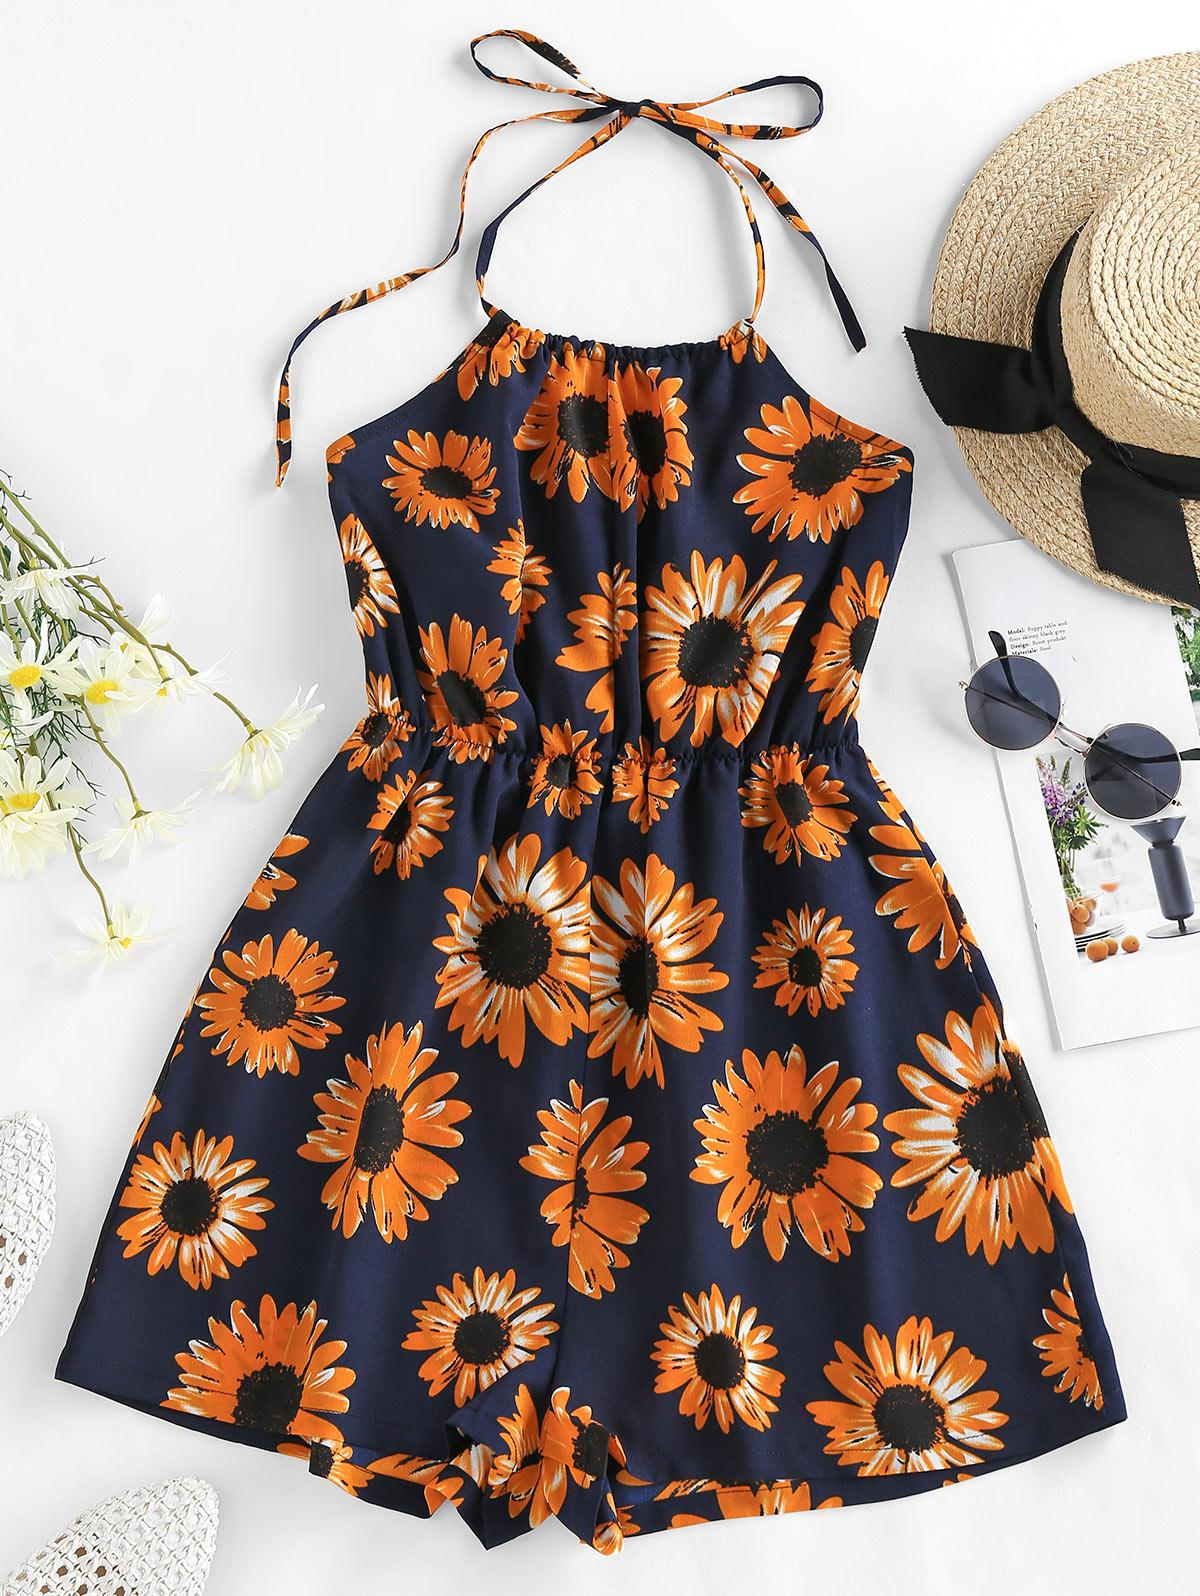 ZAFUL Sunflower Print Halter Romper